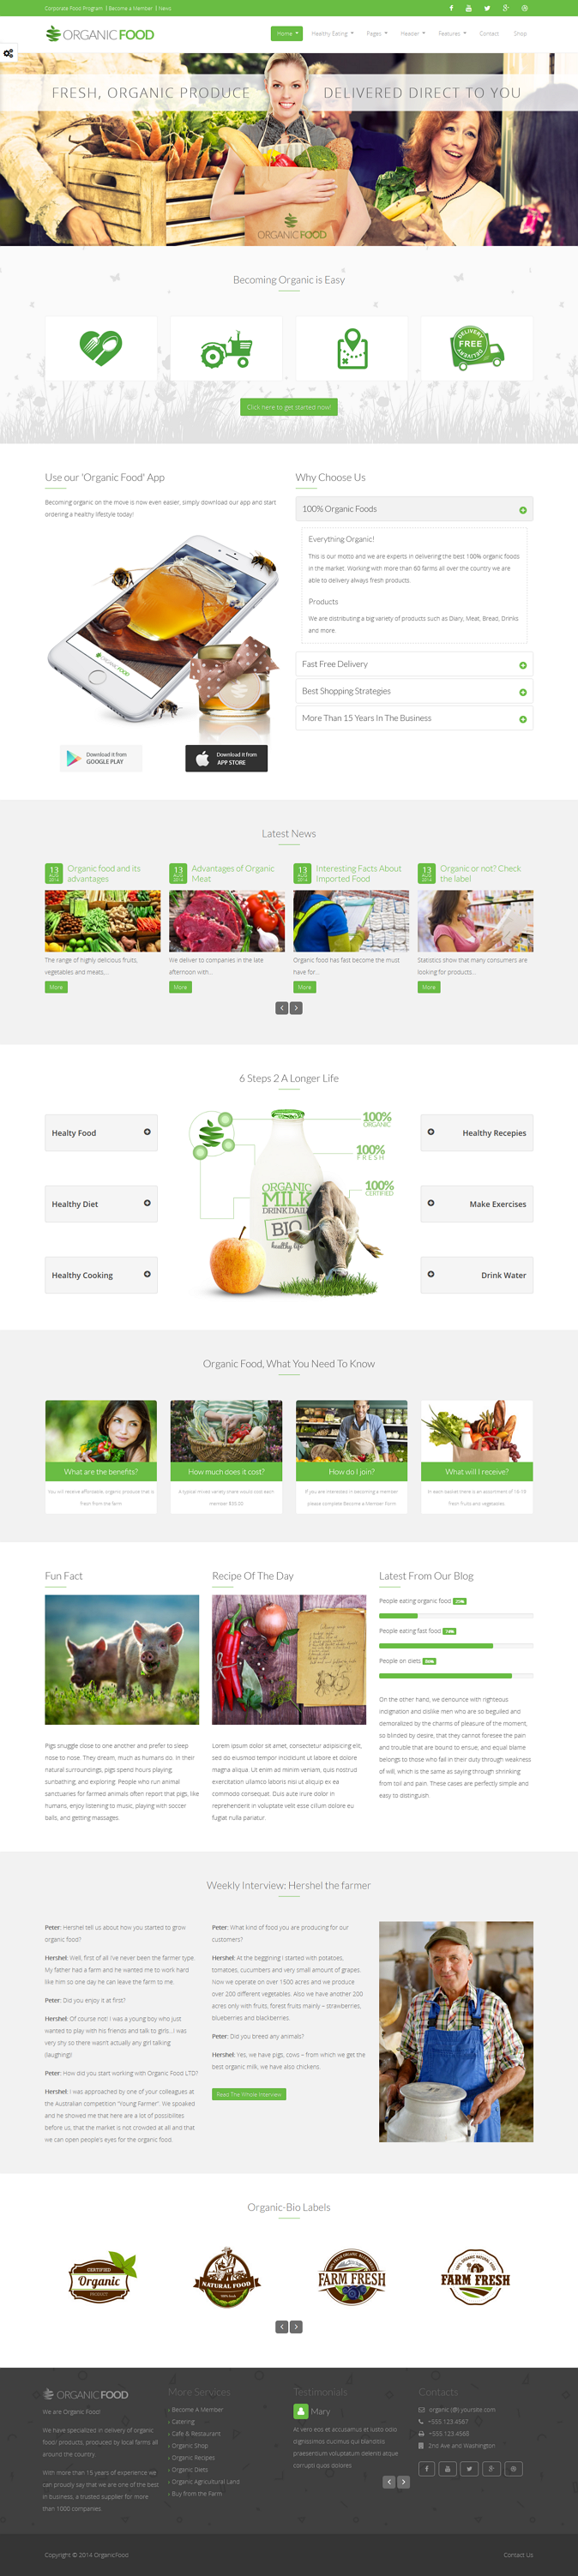 Organic Food is a clean, modern, functional and easy-to-use responsive parallax WordPress theme  ...